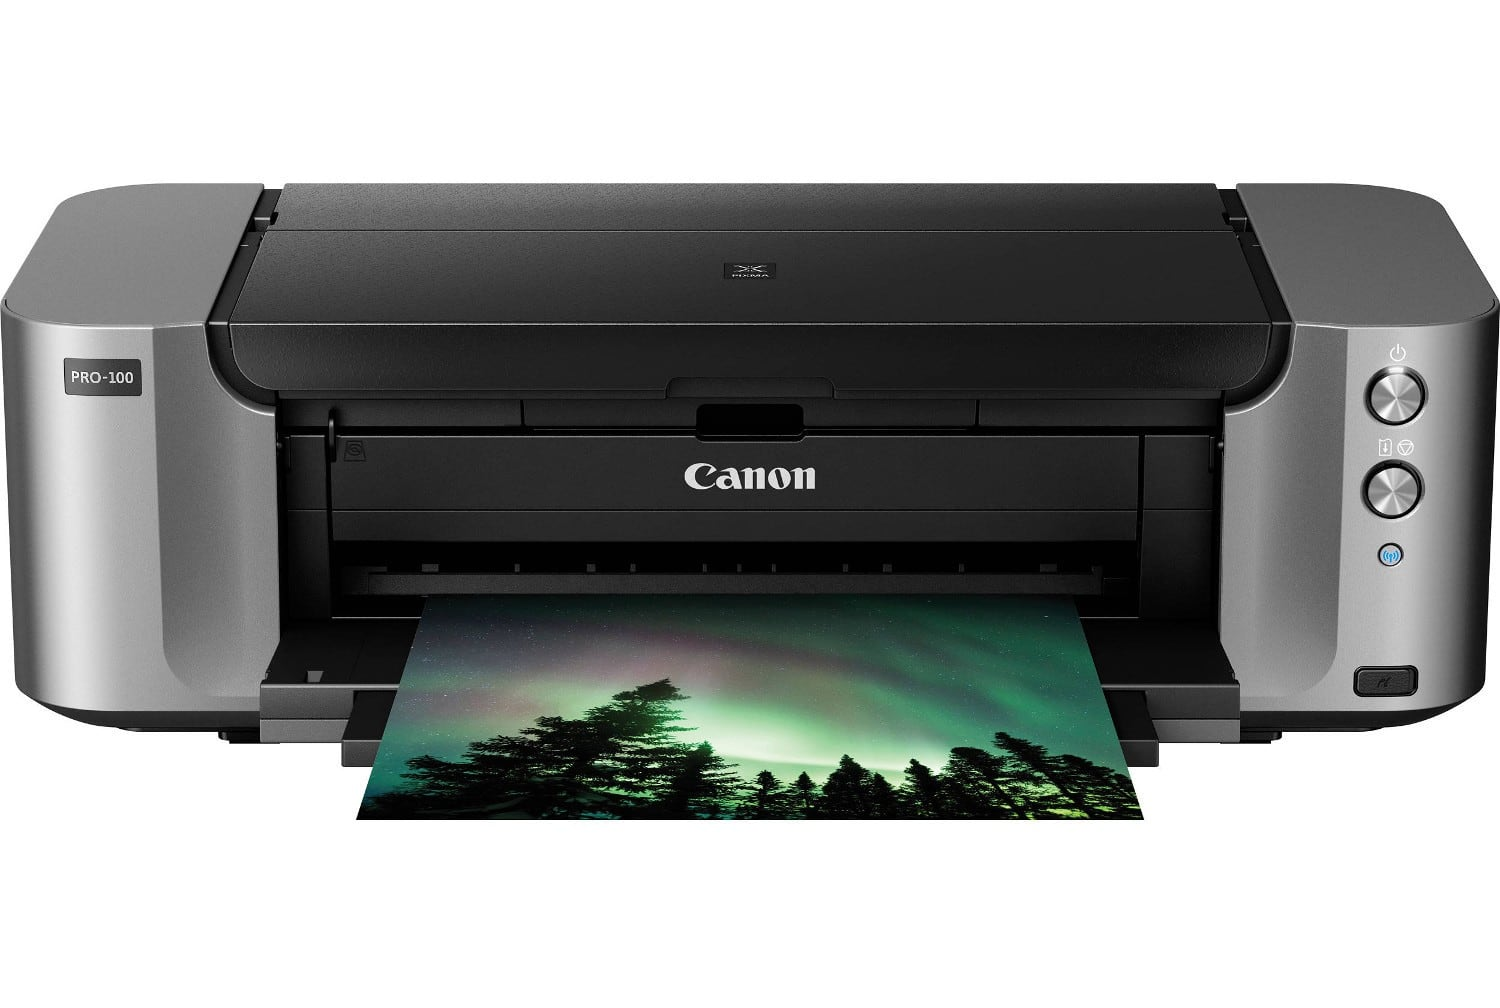 Canon PIXMA PRO-100 Color Inkjet Wireless Photo Printer $65 after $250 MIR + free s/h